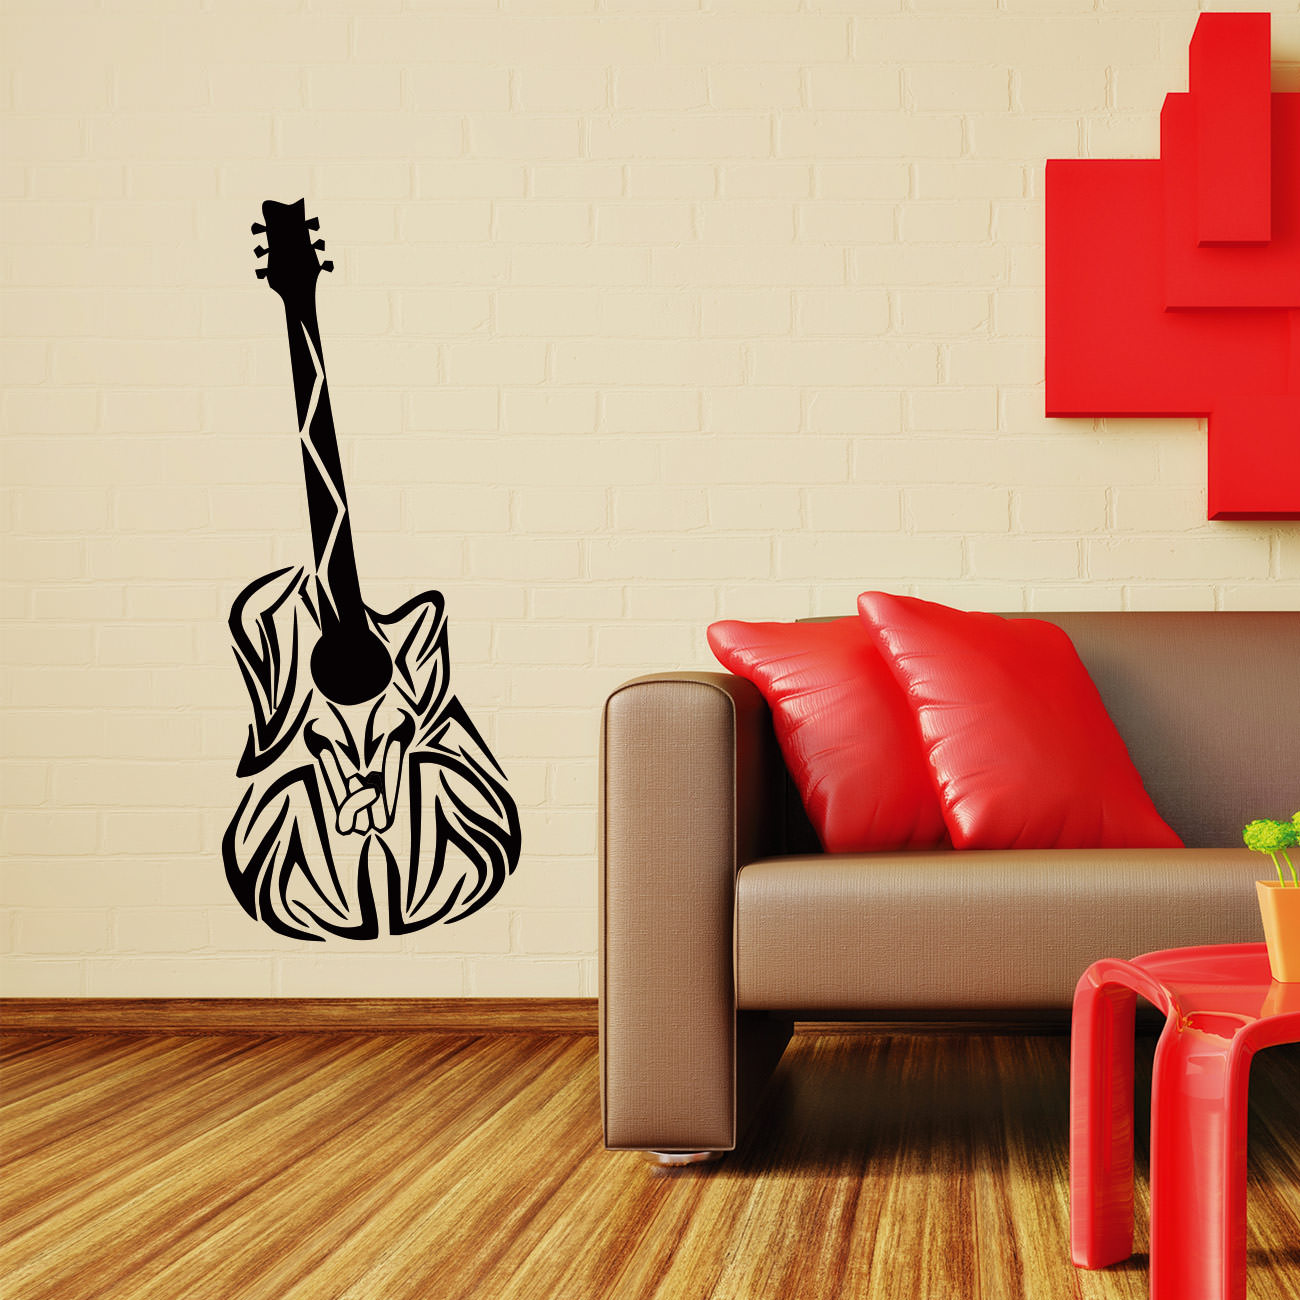 wandtattoos gitarre musik f r hobbybereich od wohnzimmer. Black Bedroom Furniture Sets. Home Design Ideas